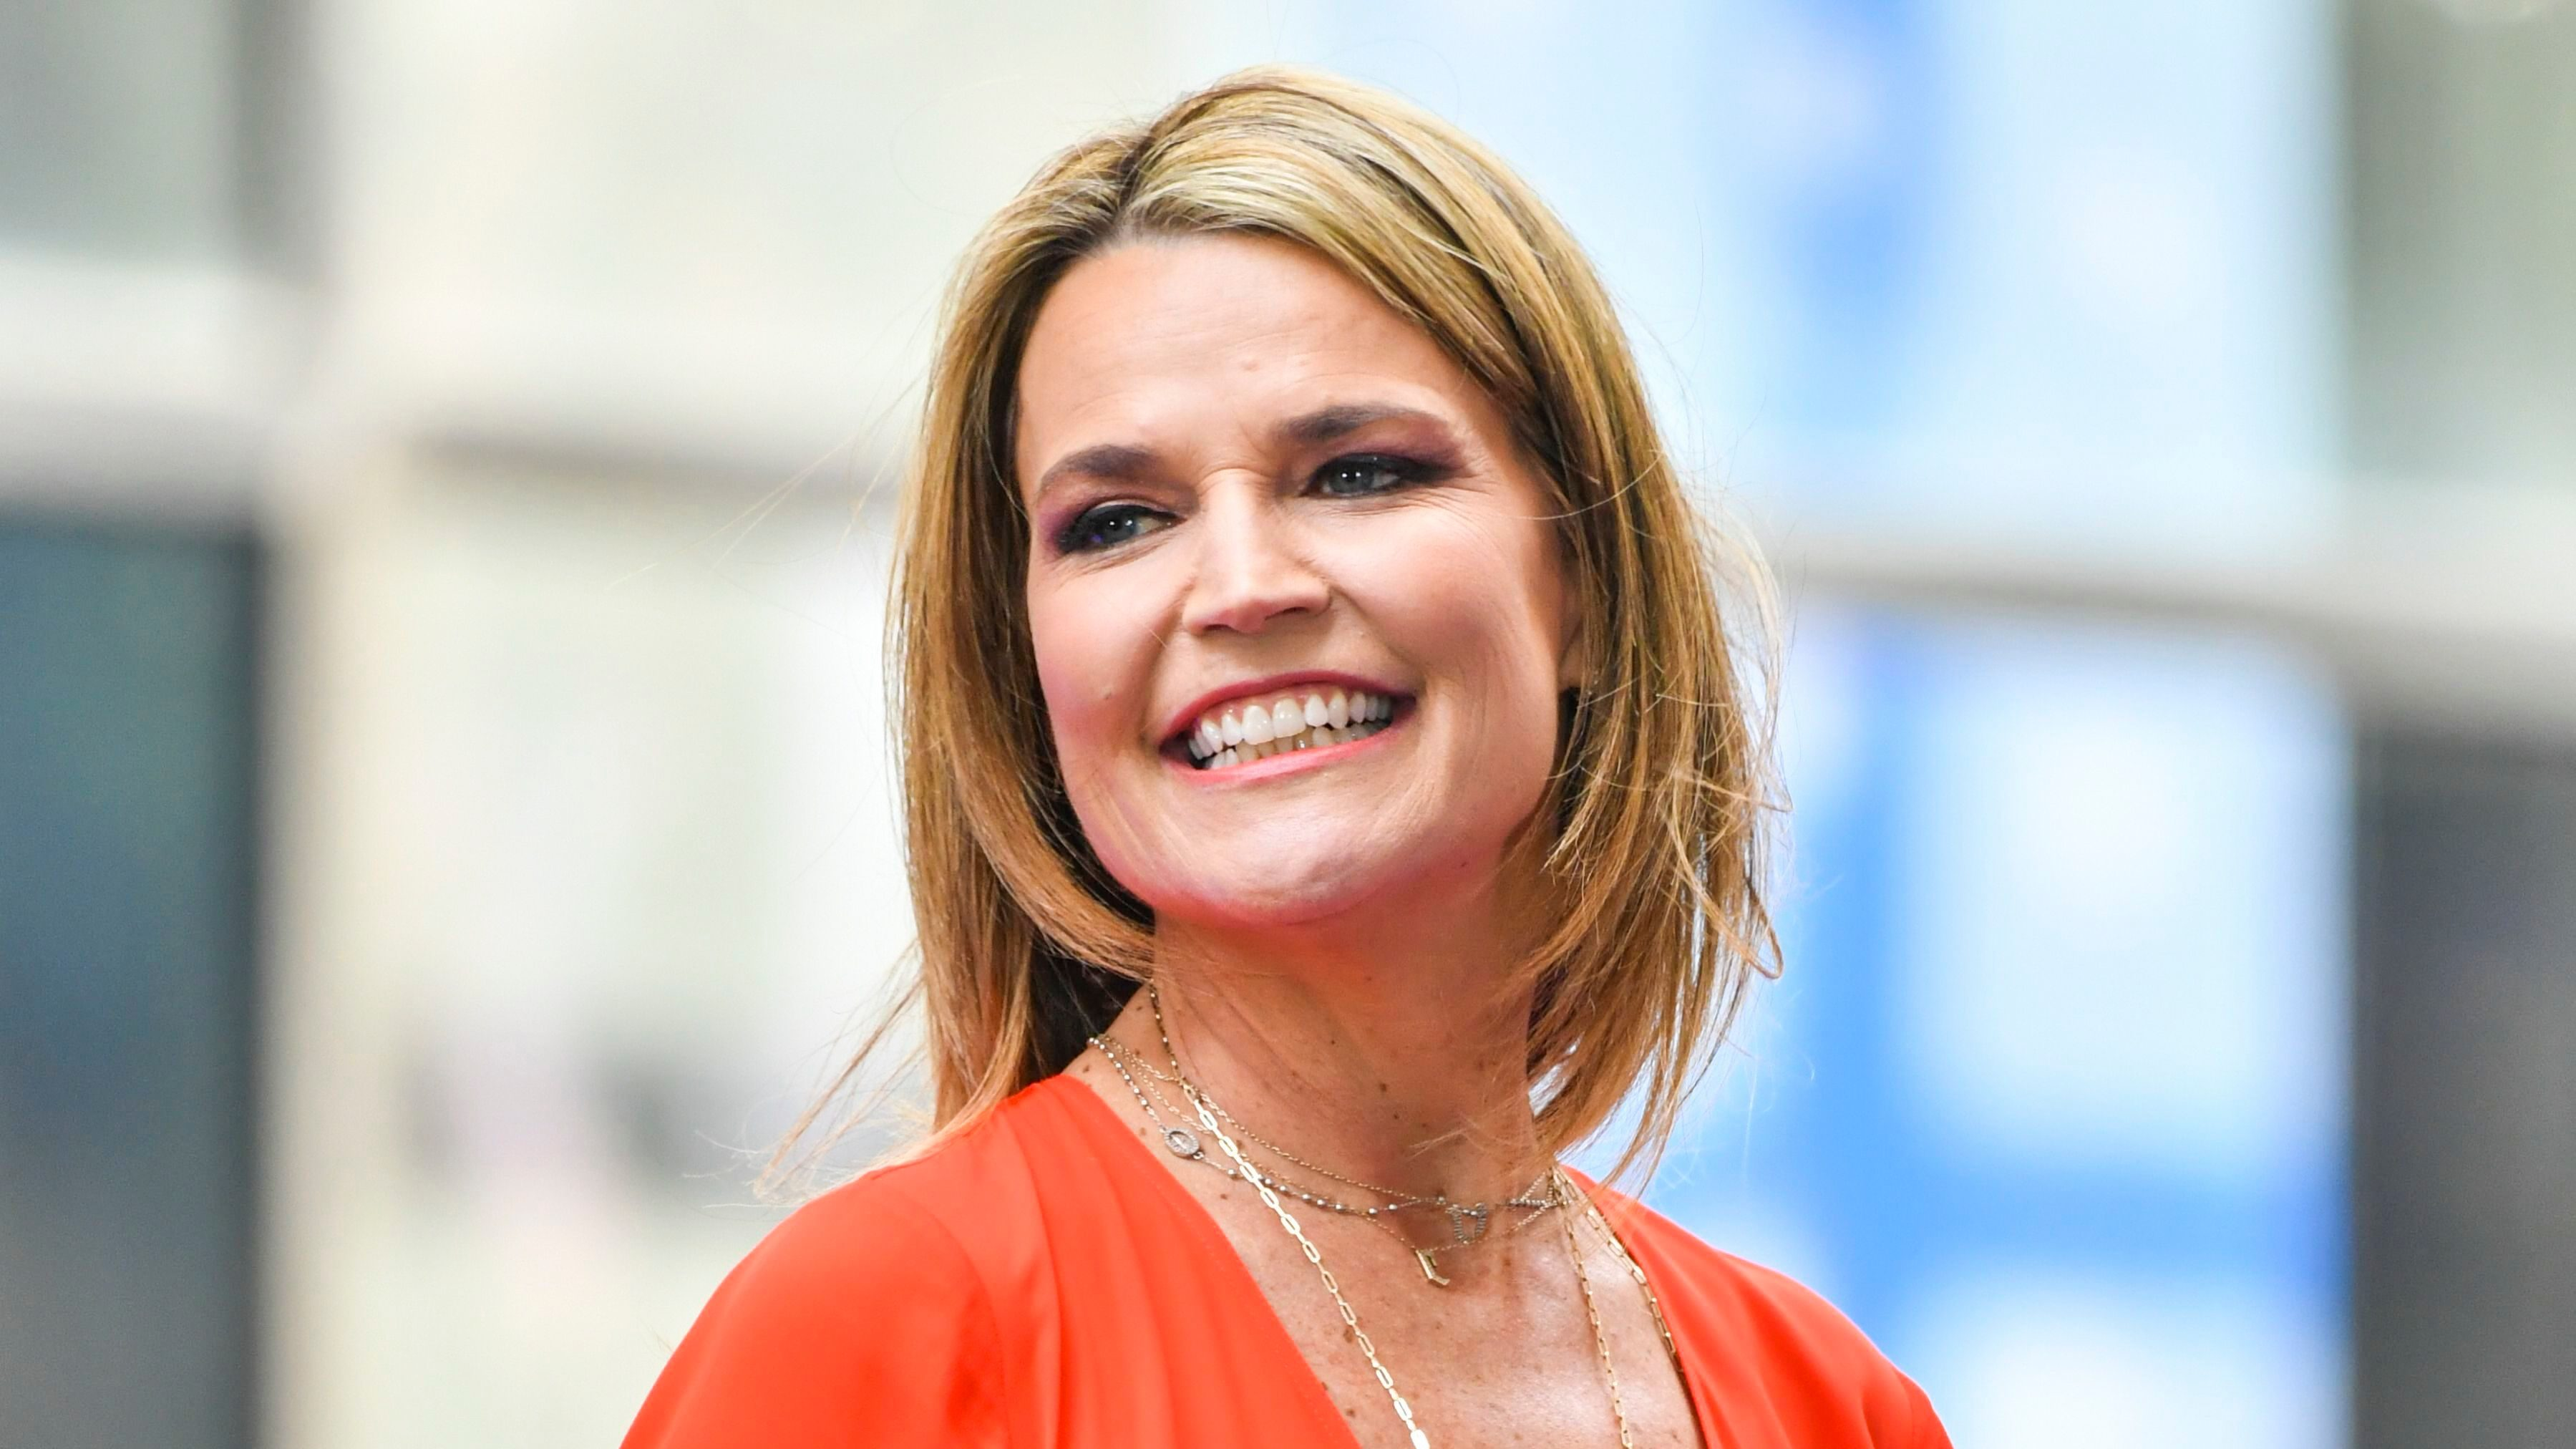 Savannah Guthrie Sick Anchor Talks Misery Amid Pneumonia Battle